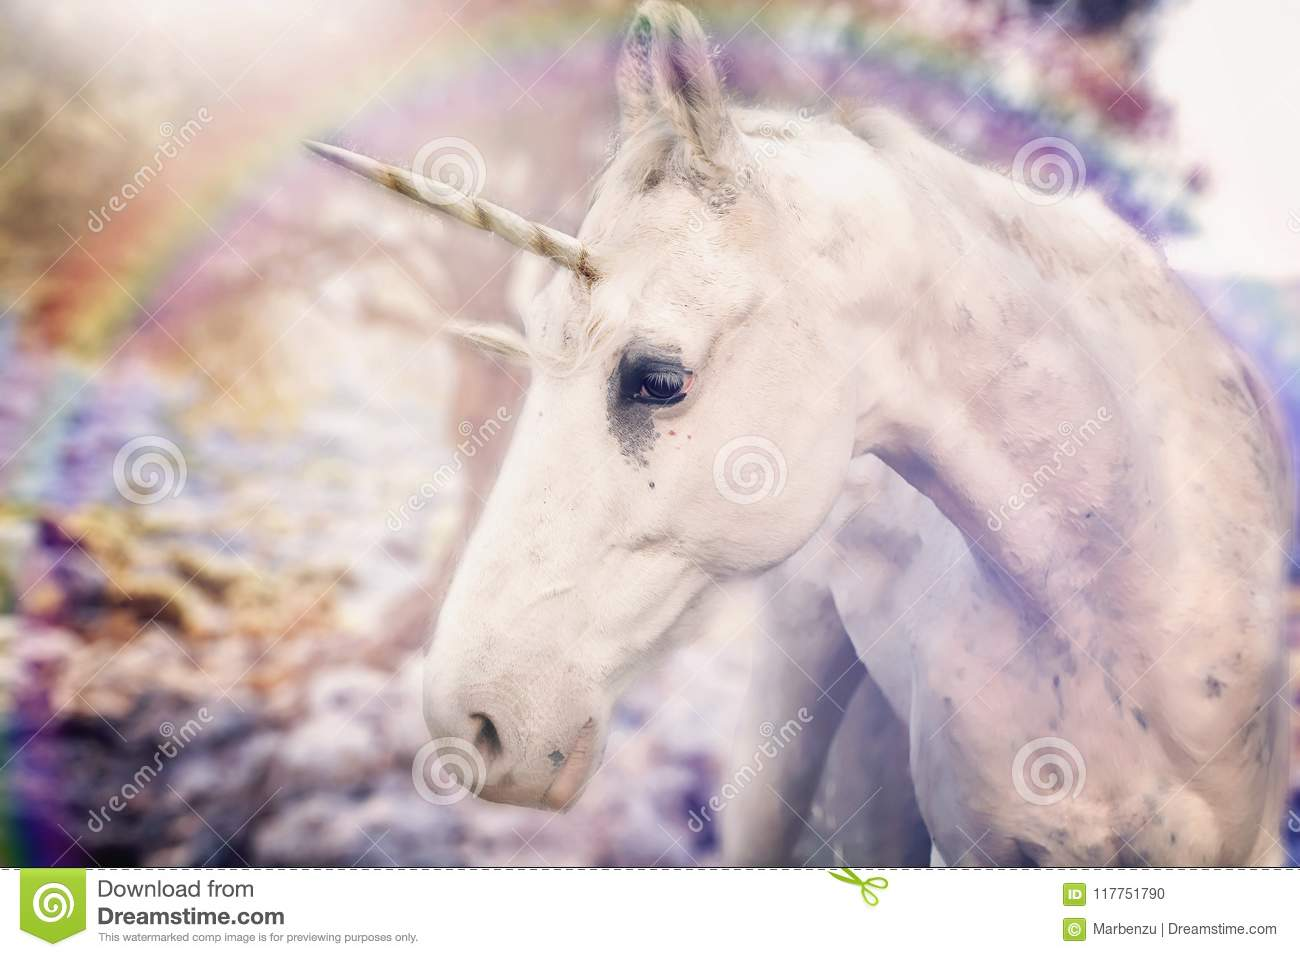 Real unicorn white horned